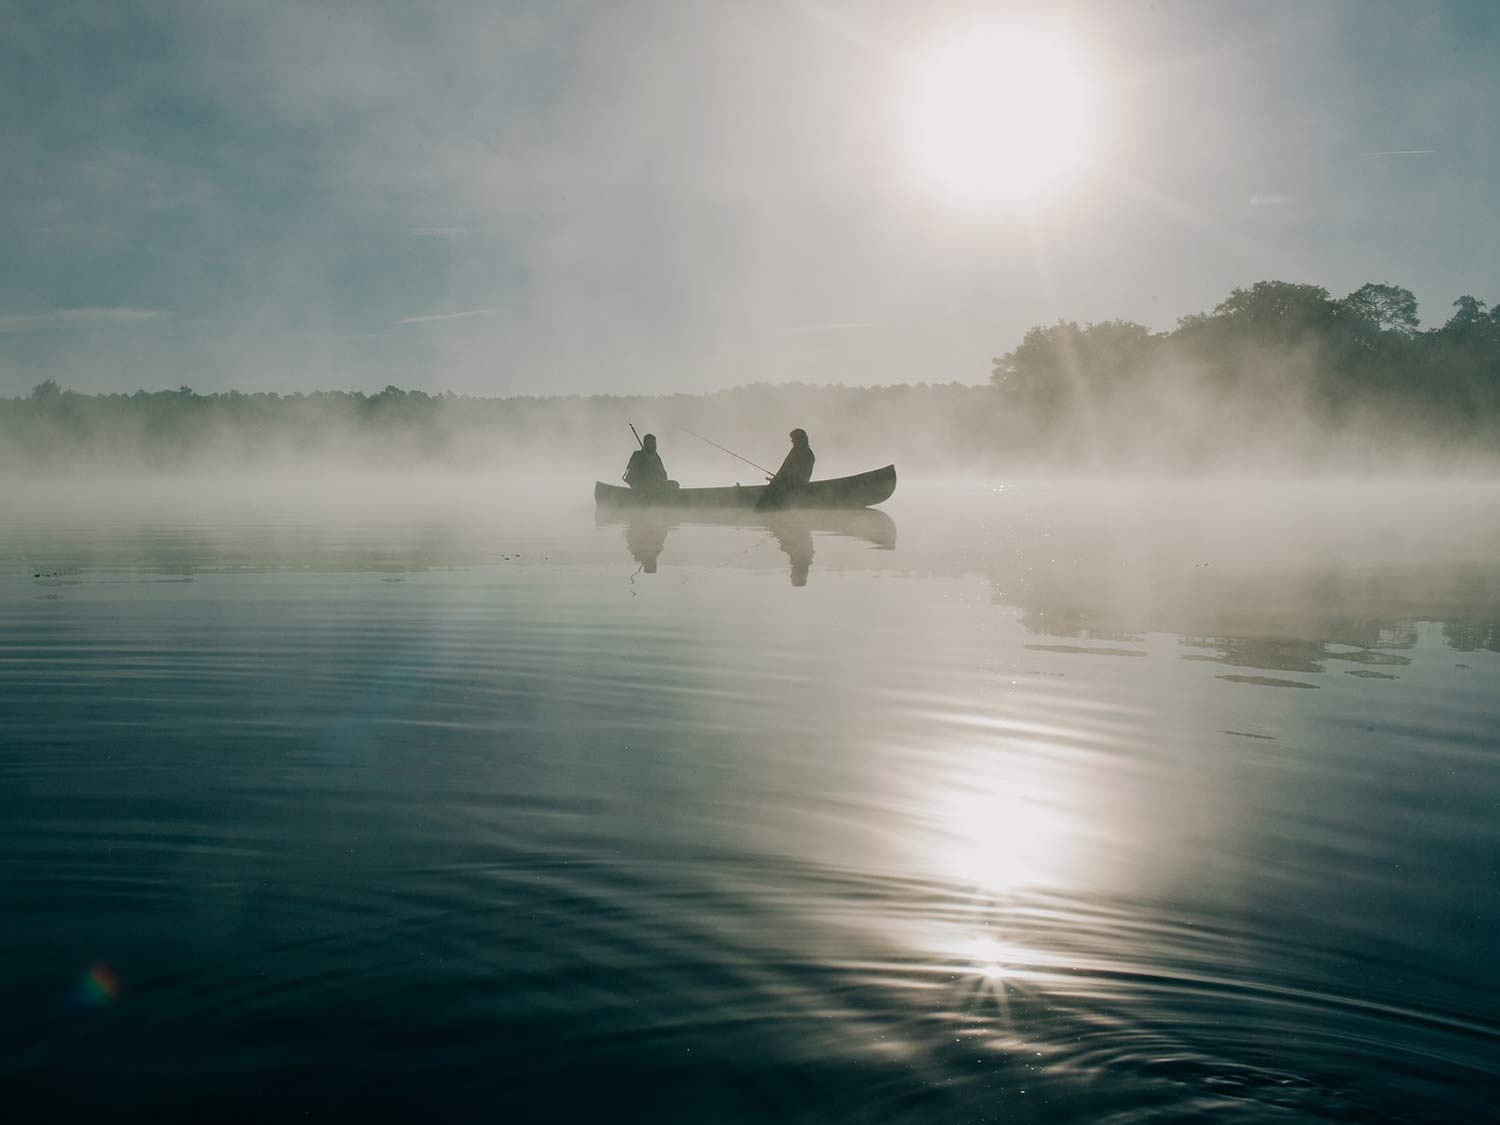 Two anglers sit and fish on a canoe in the middle of a morning sunrise, with fog rising off the smooth surface of the lake.